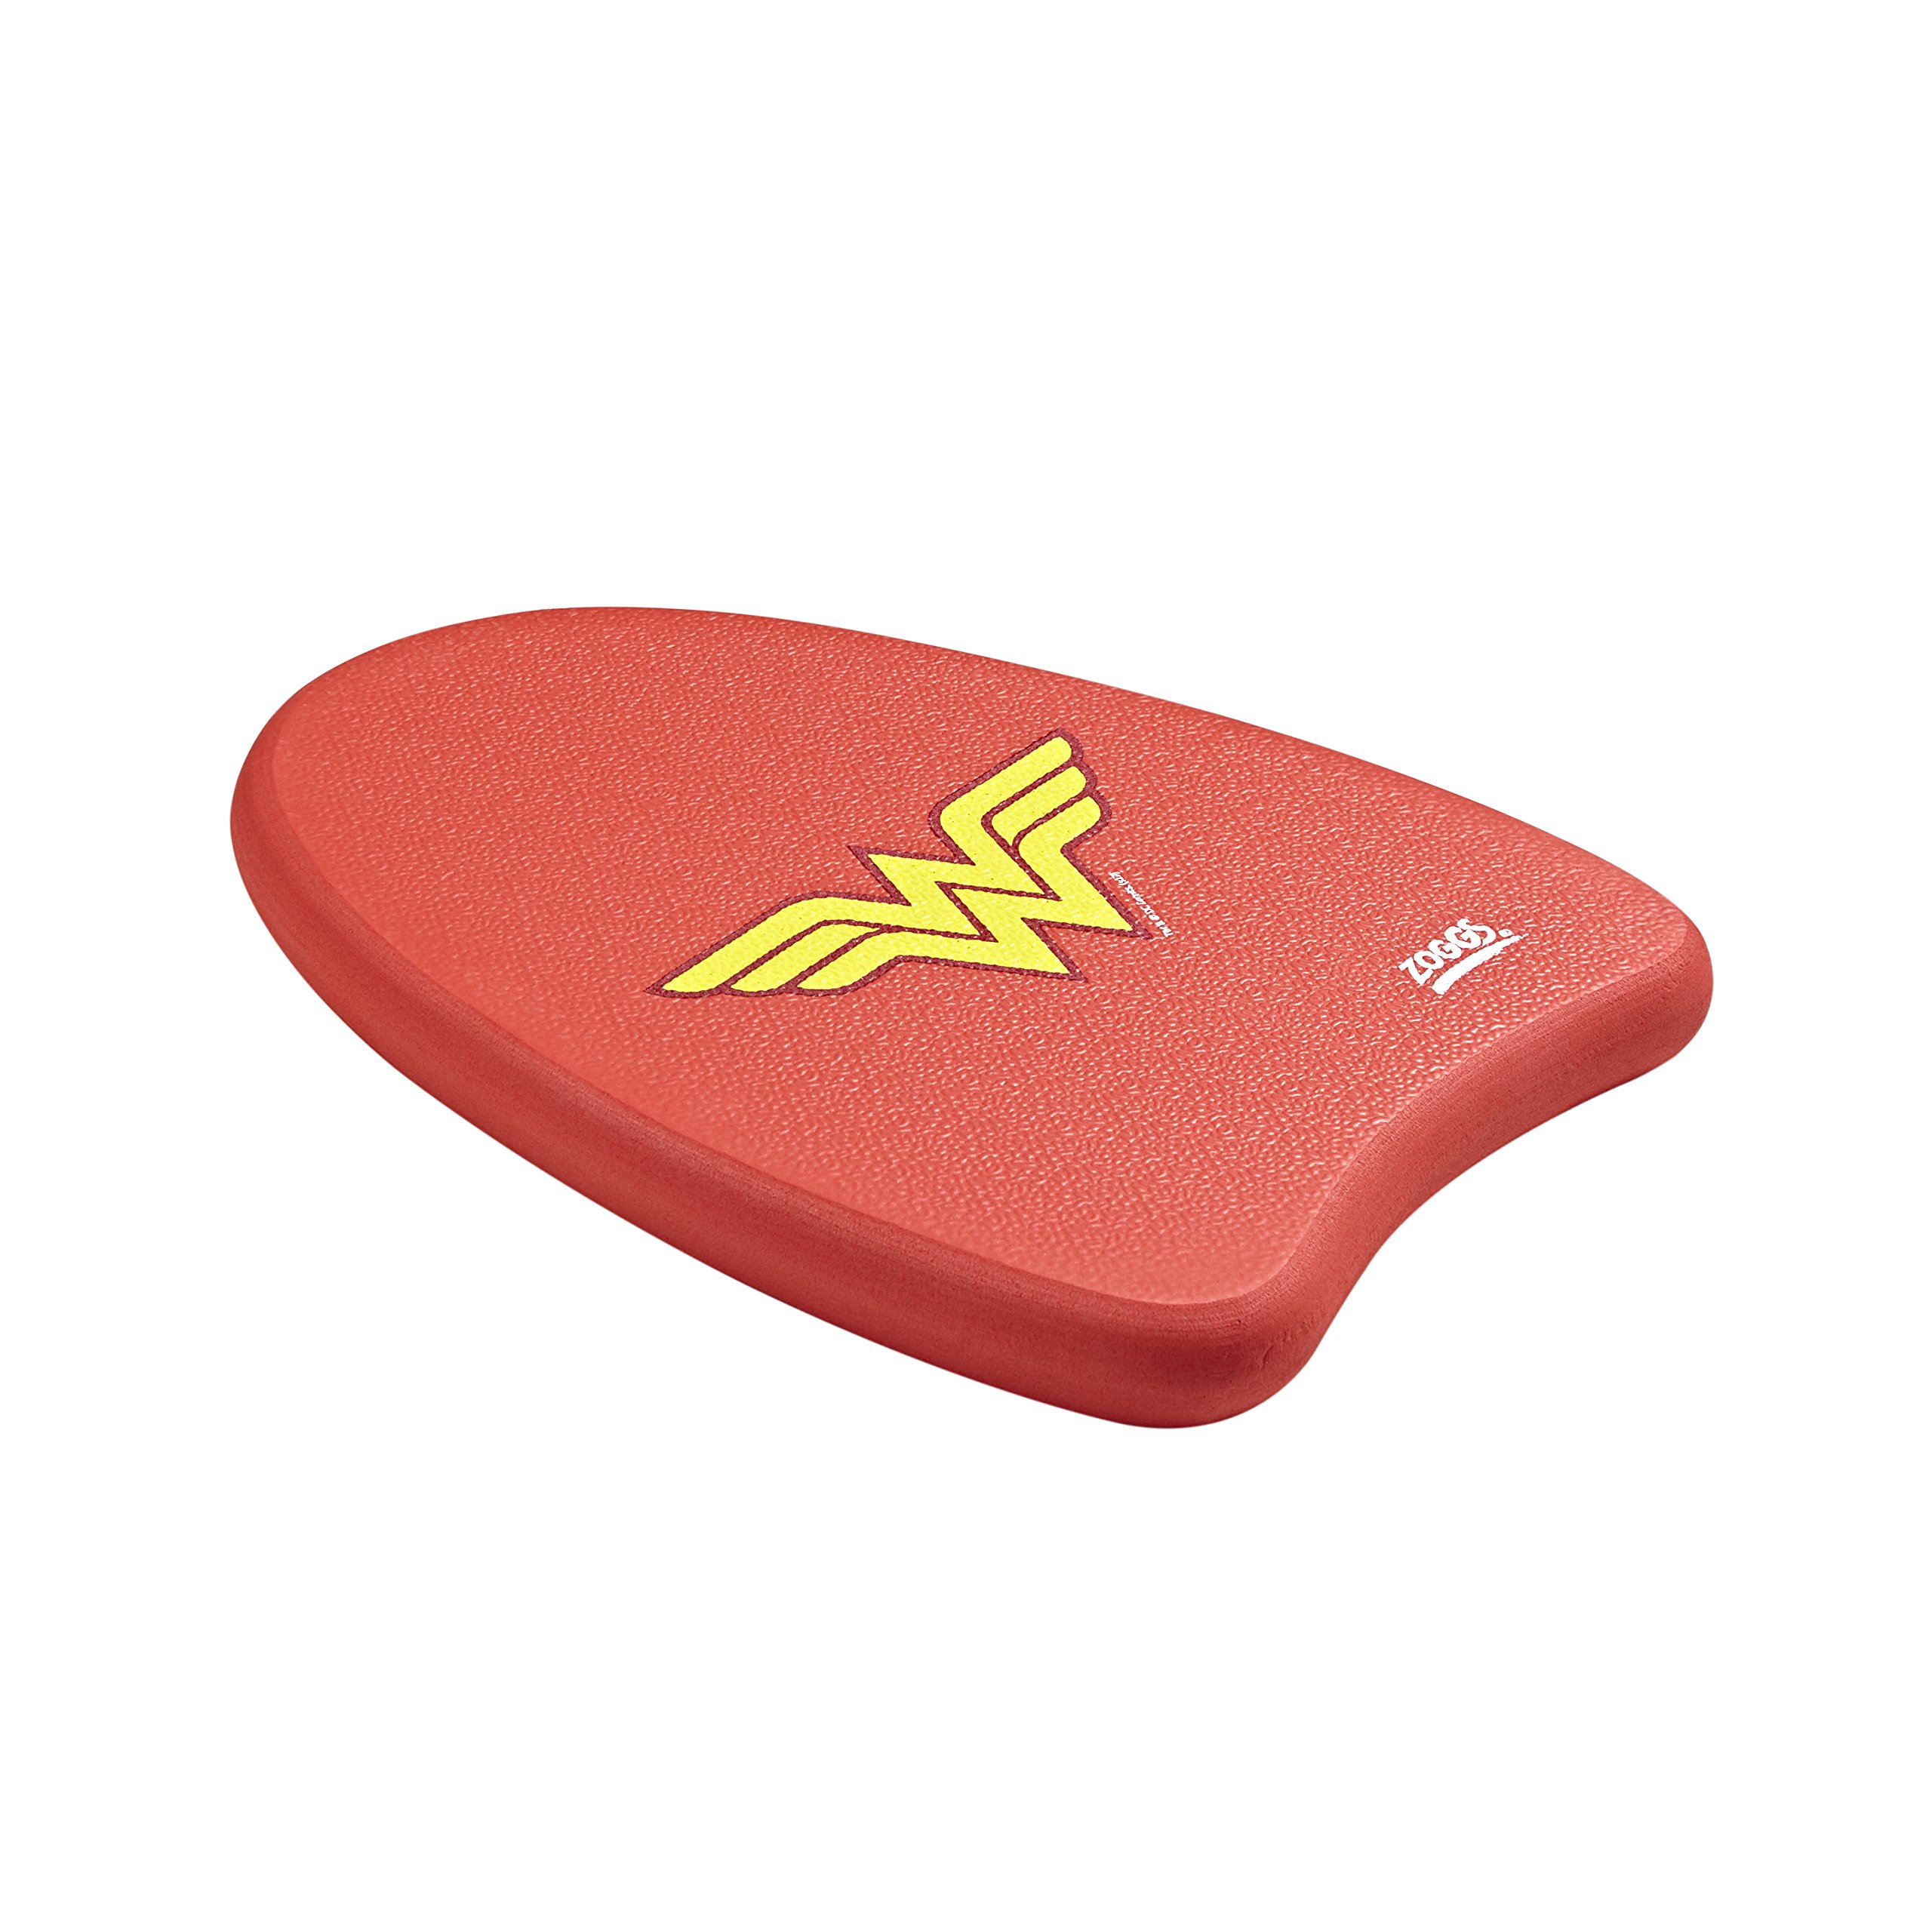 Zoggs Kids' Dc Super Heroes Wonder Woman Swimming Kickboard Float, Red/yellow,